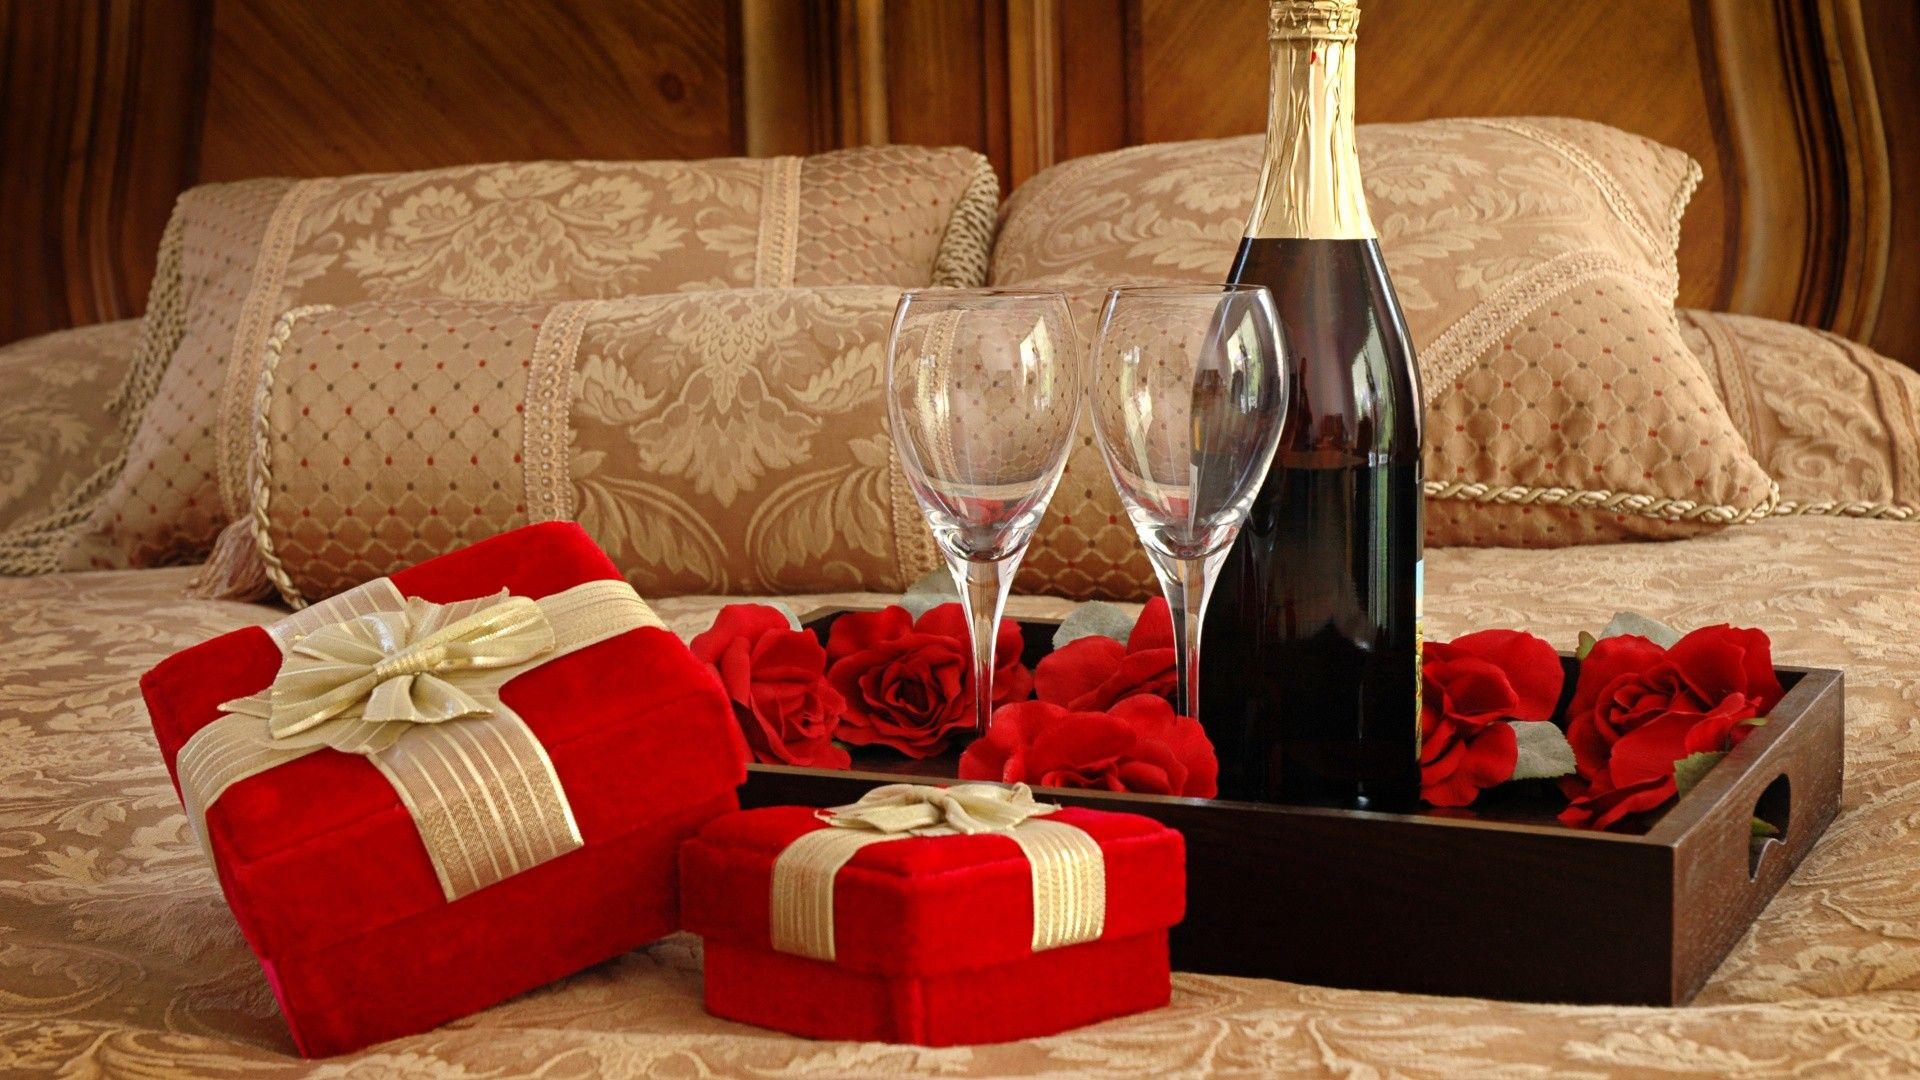 Plan a romantic at-home date for Valentine's Day with our tips for ...